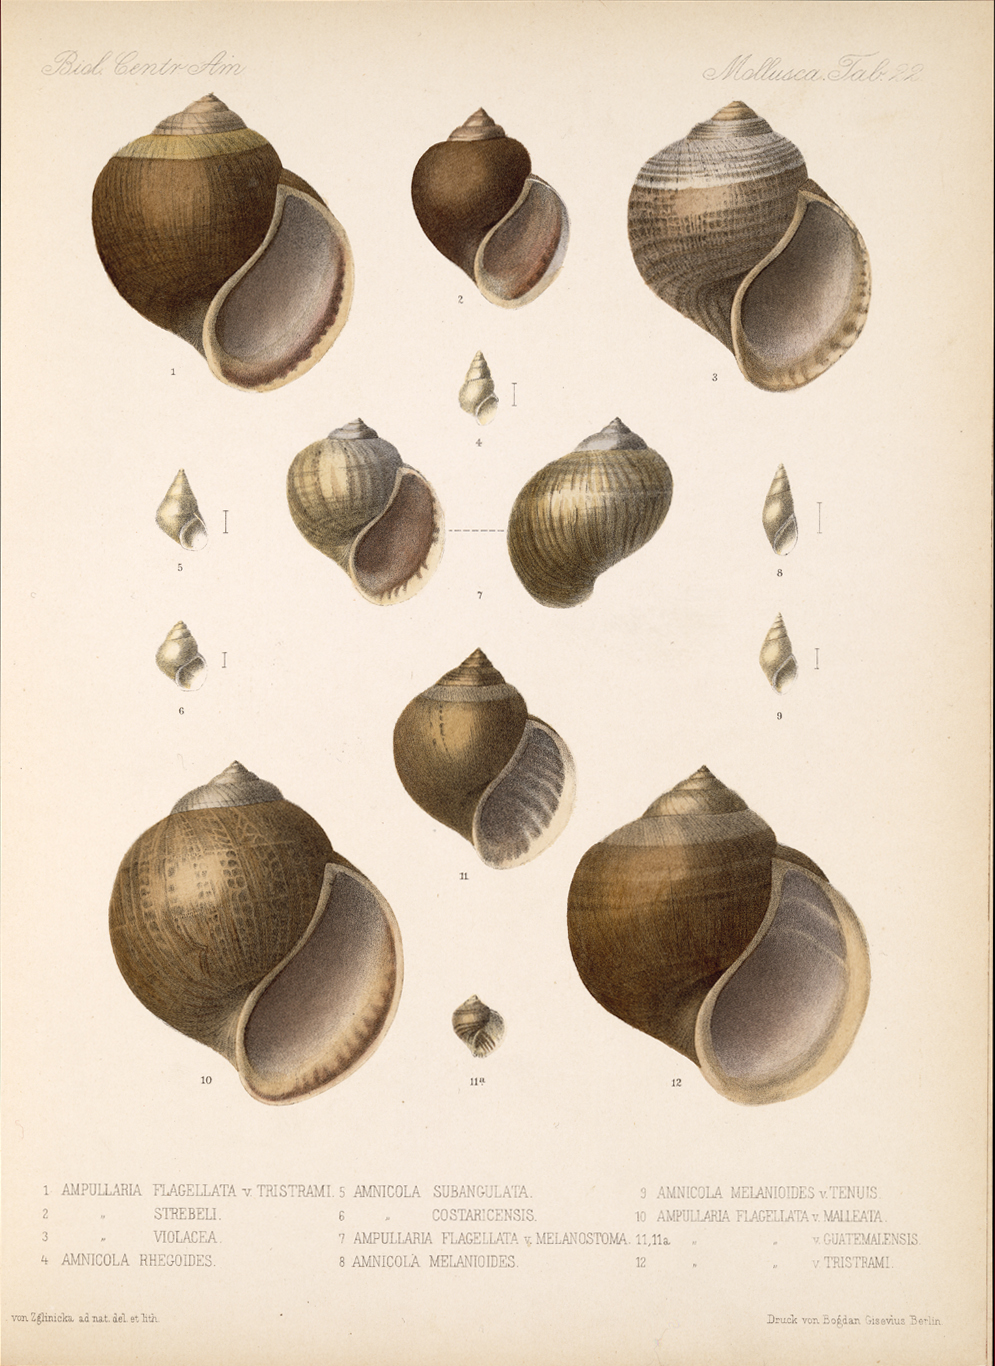 Shells and Mollusks,  Image number:bca_06_00_00_753